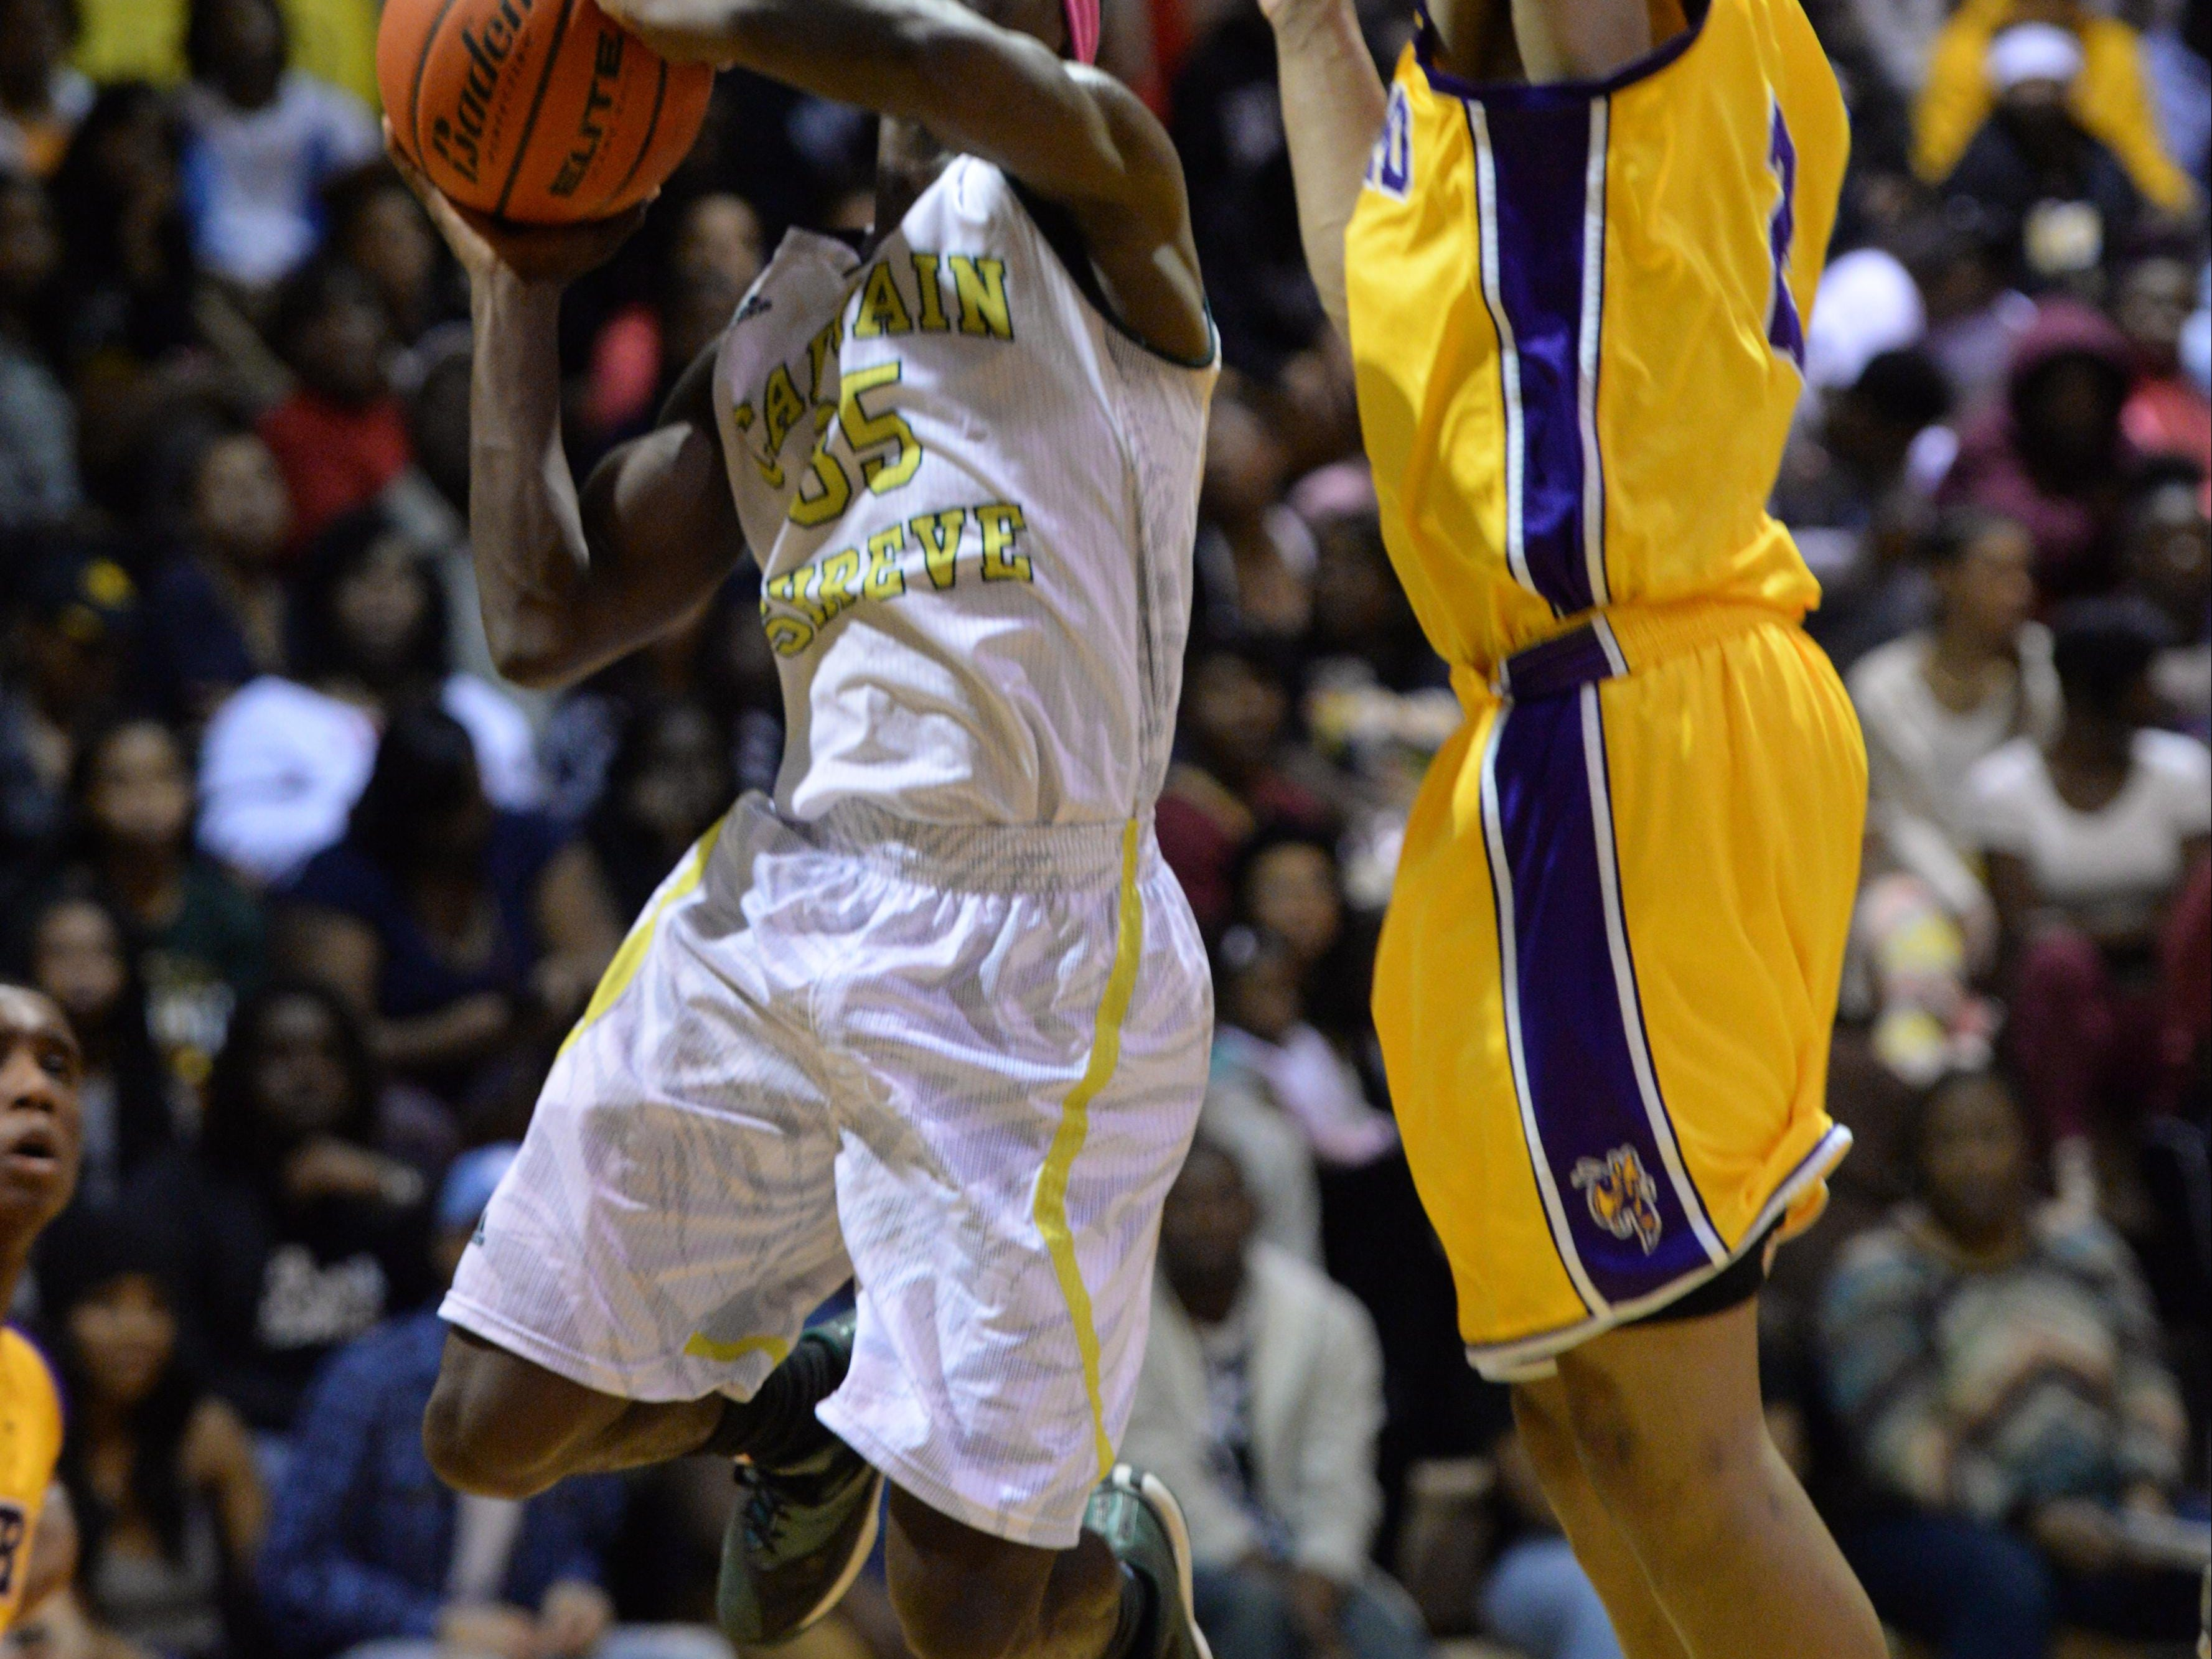 Captain Shreve's Toronco Loston will be one of the top local players in Saturday's Paul Millsap Classic at BPCC.